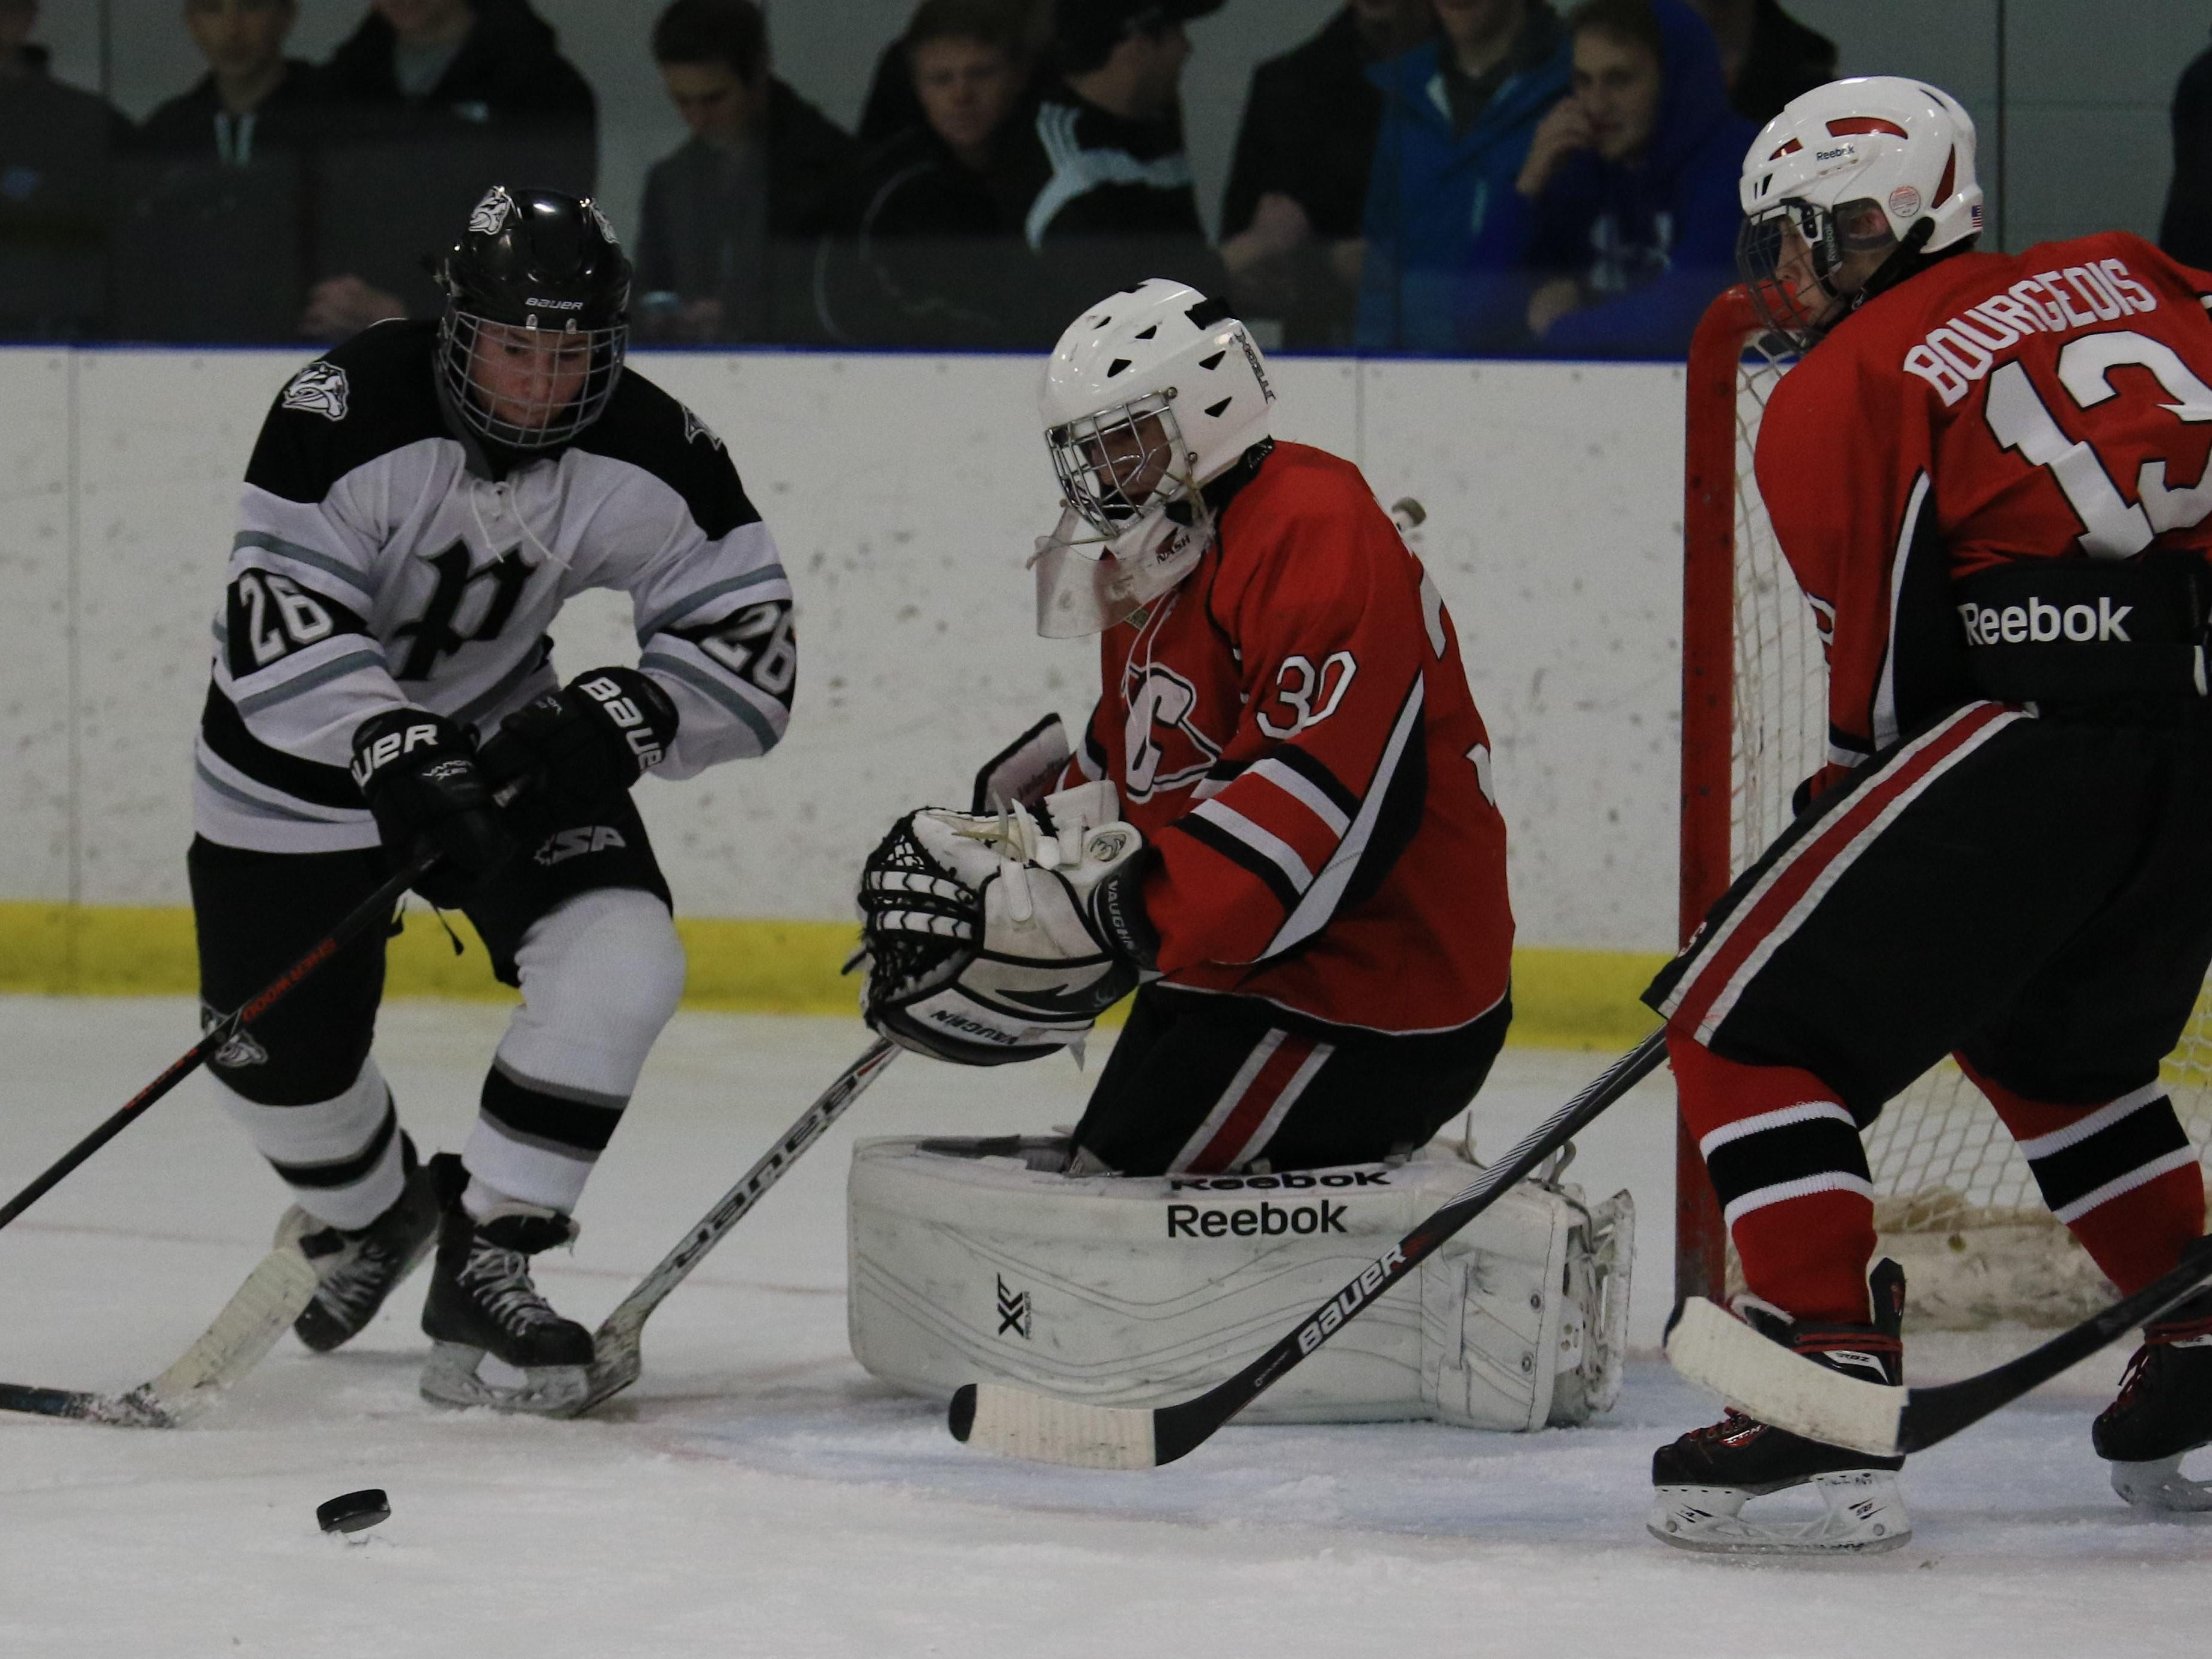 Plymouth's Josh Weber (No. 26) chases the puck in front of Canton goalie Isaac Salinas. At right for the Chiefs is Daniel Bourgeois.